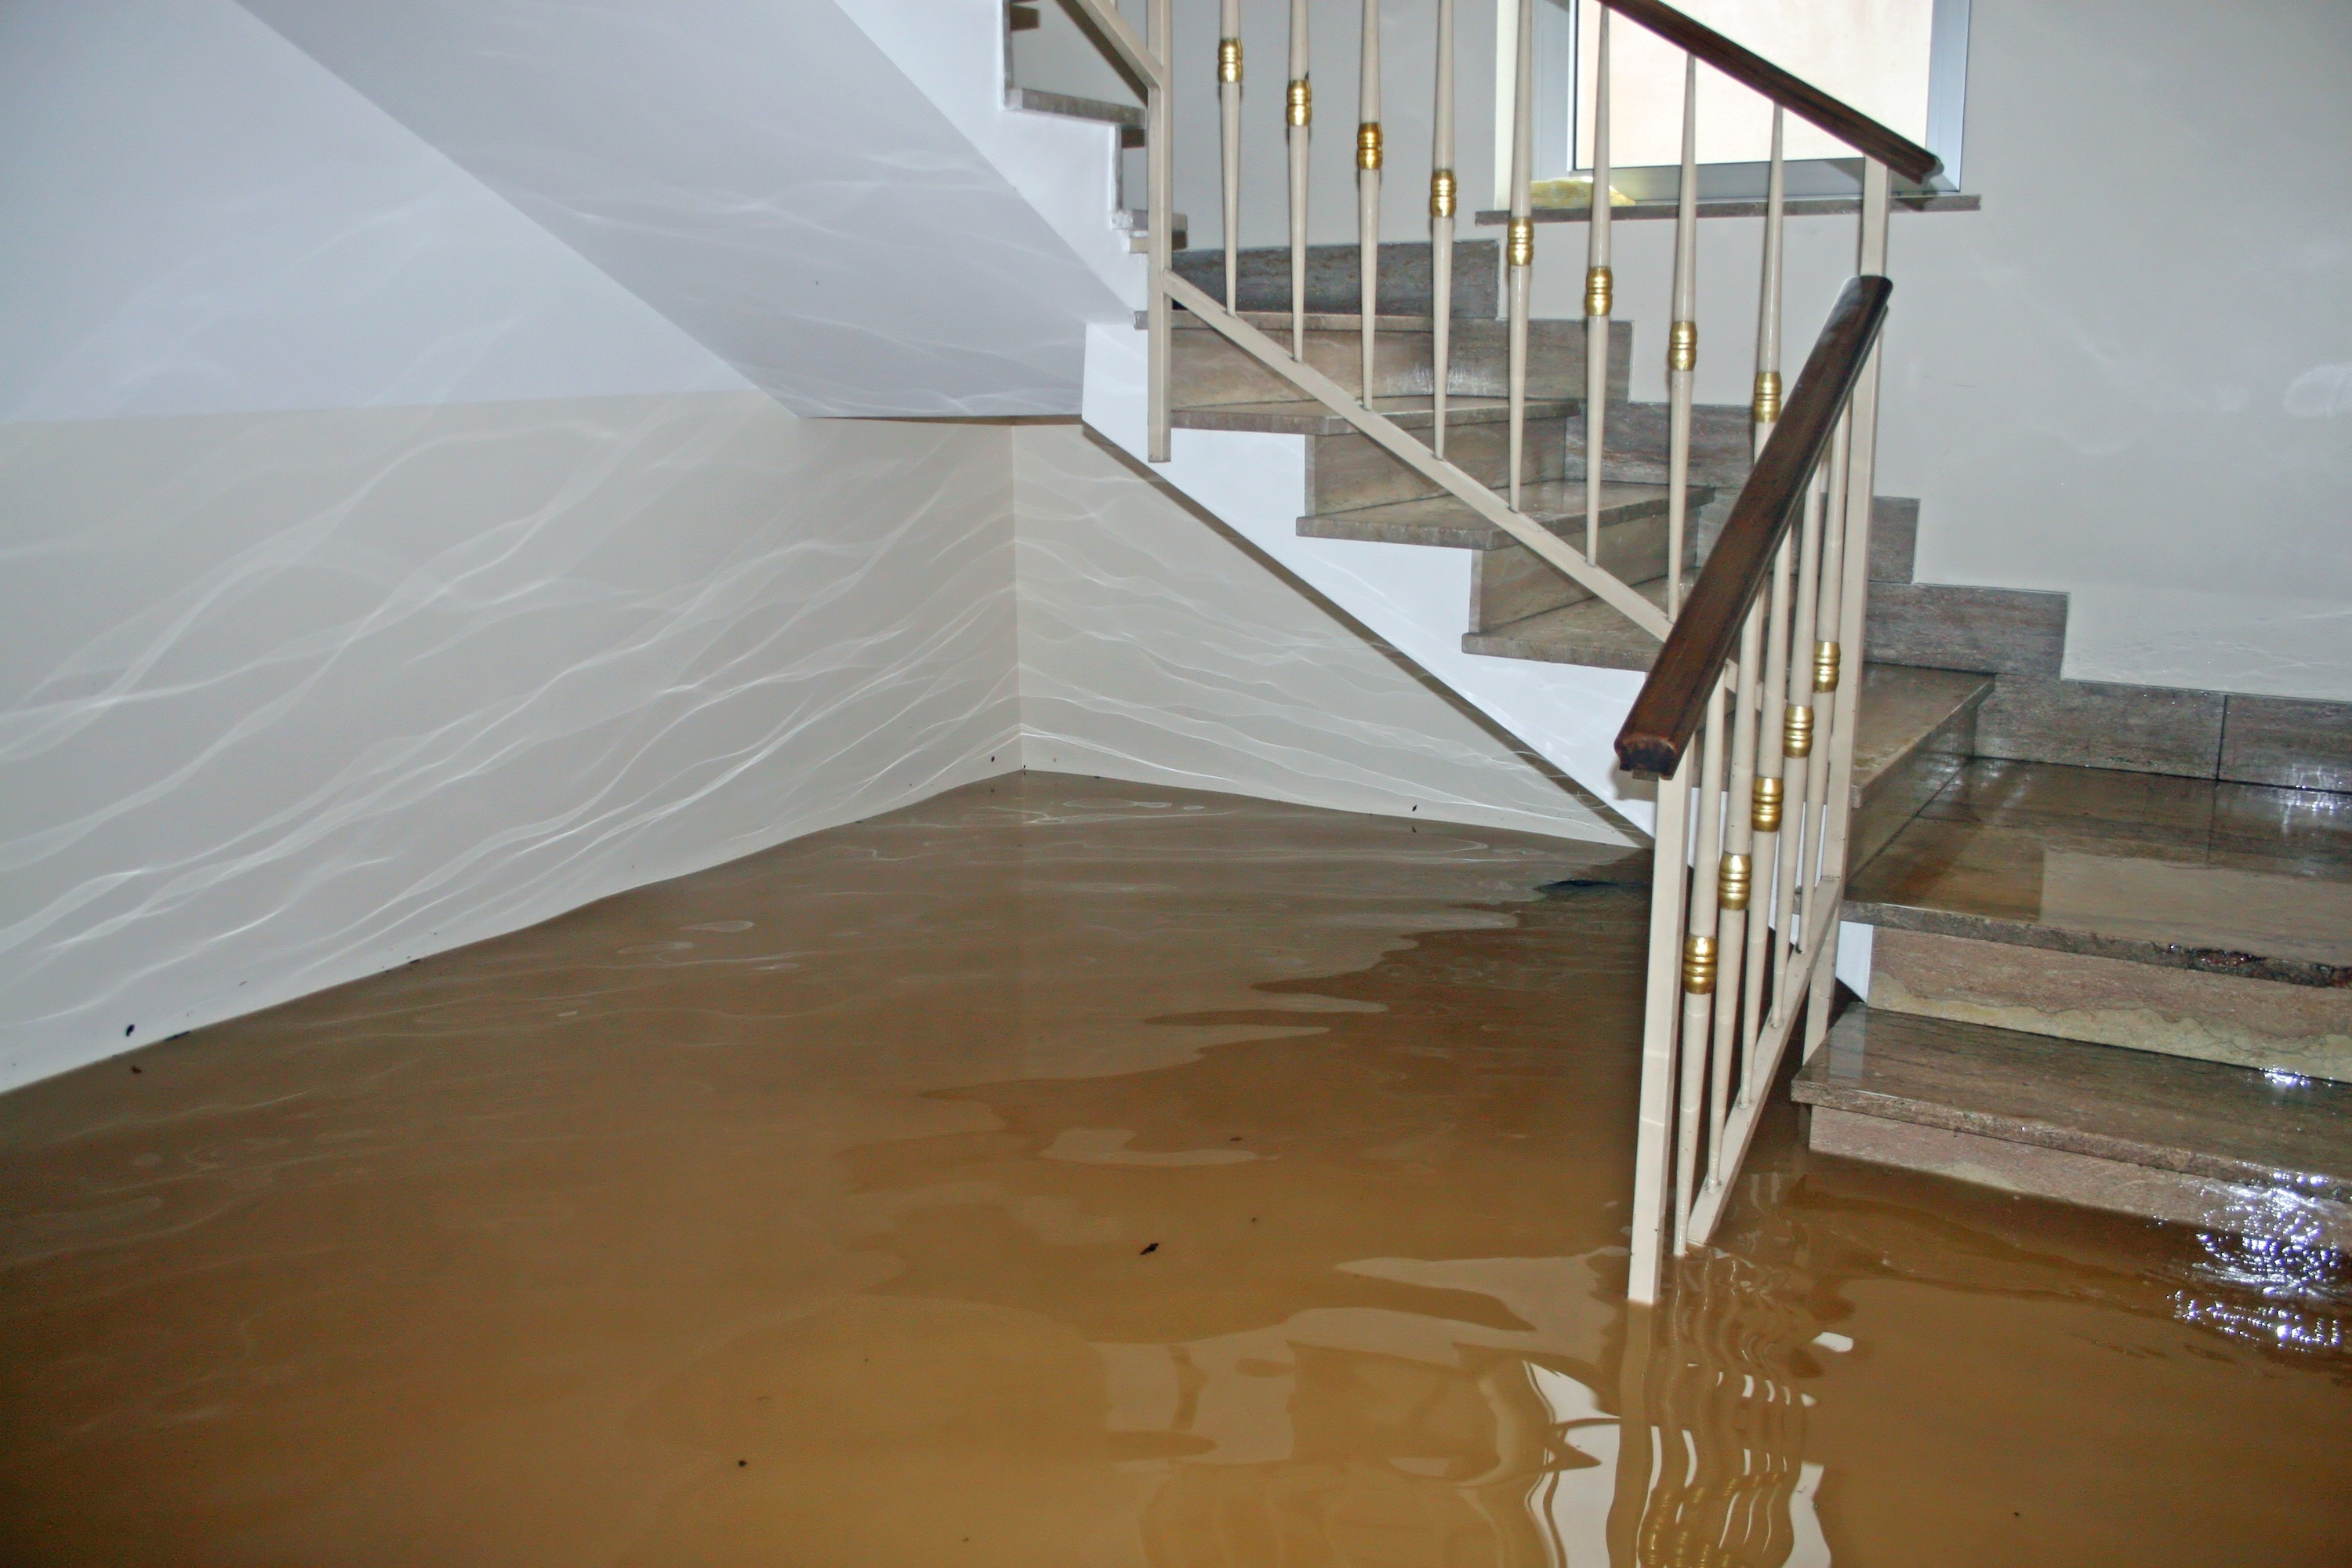 flooded home via Canstock photos